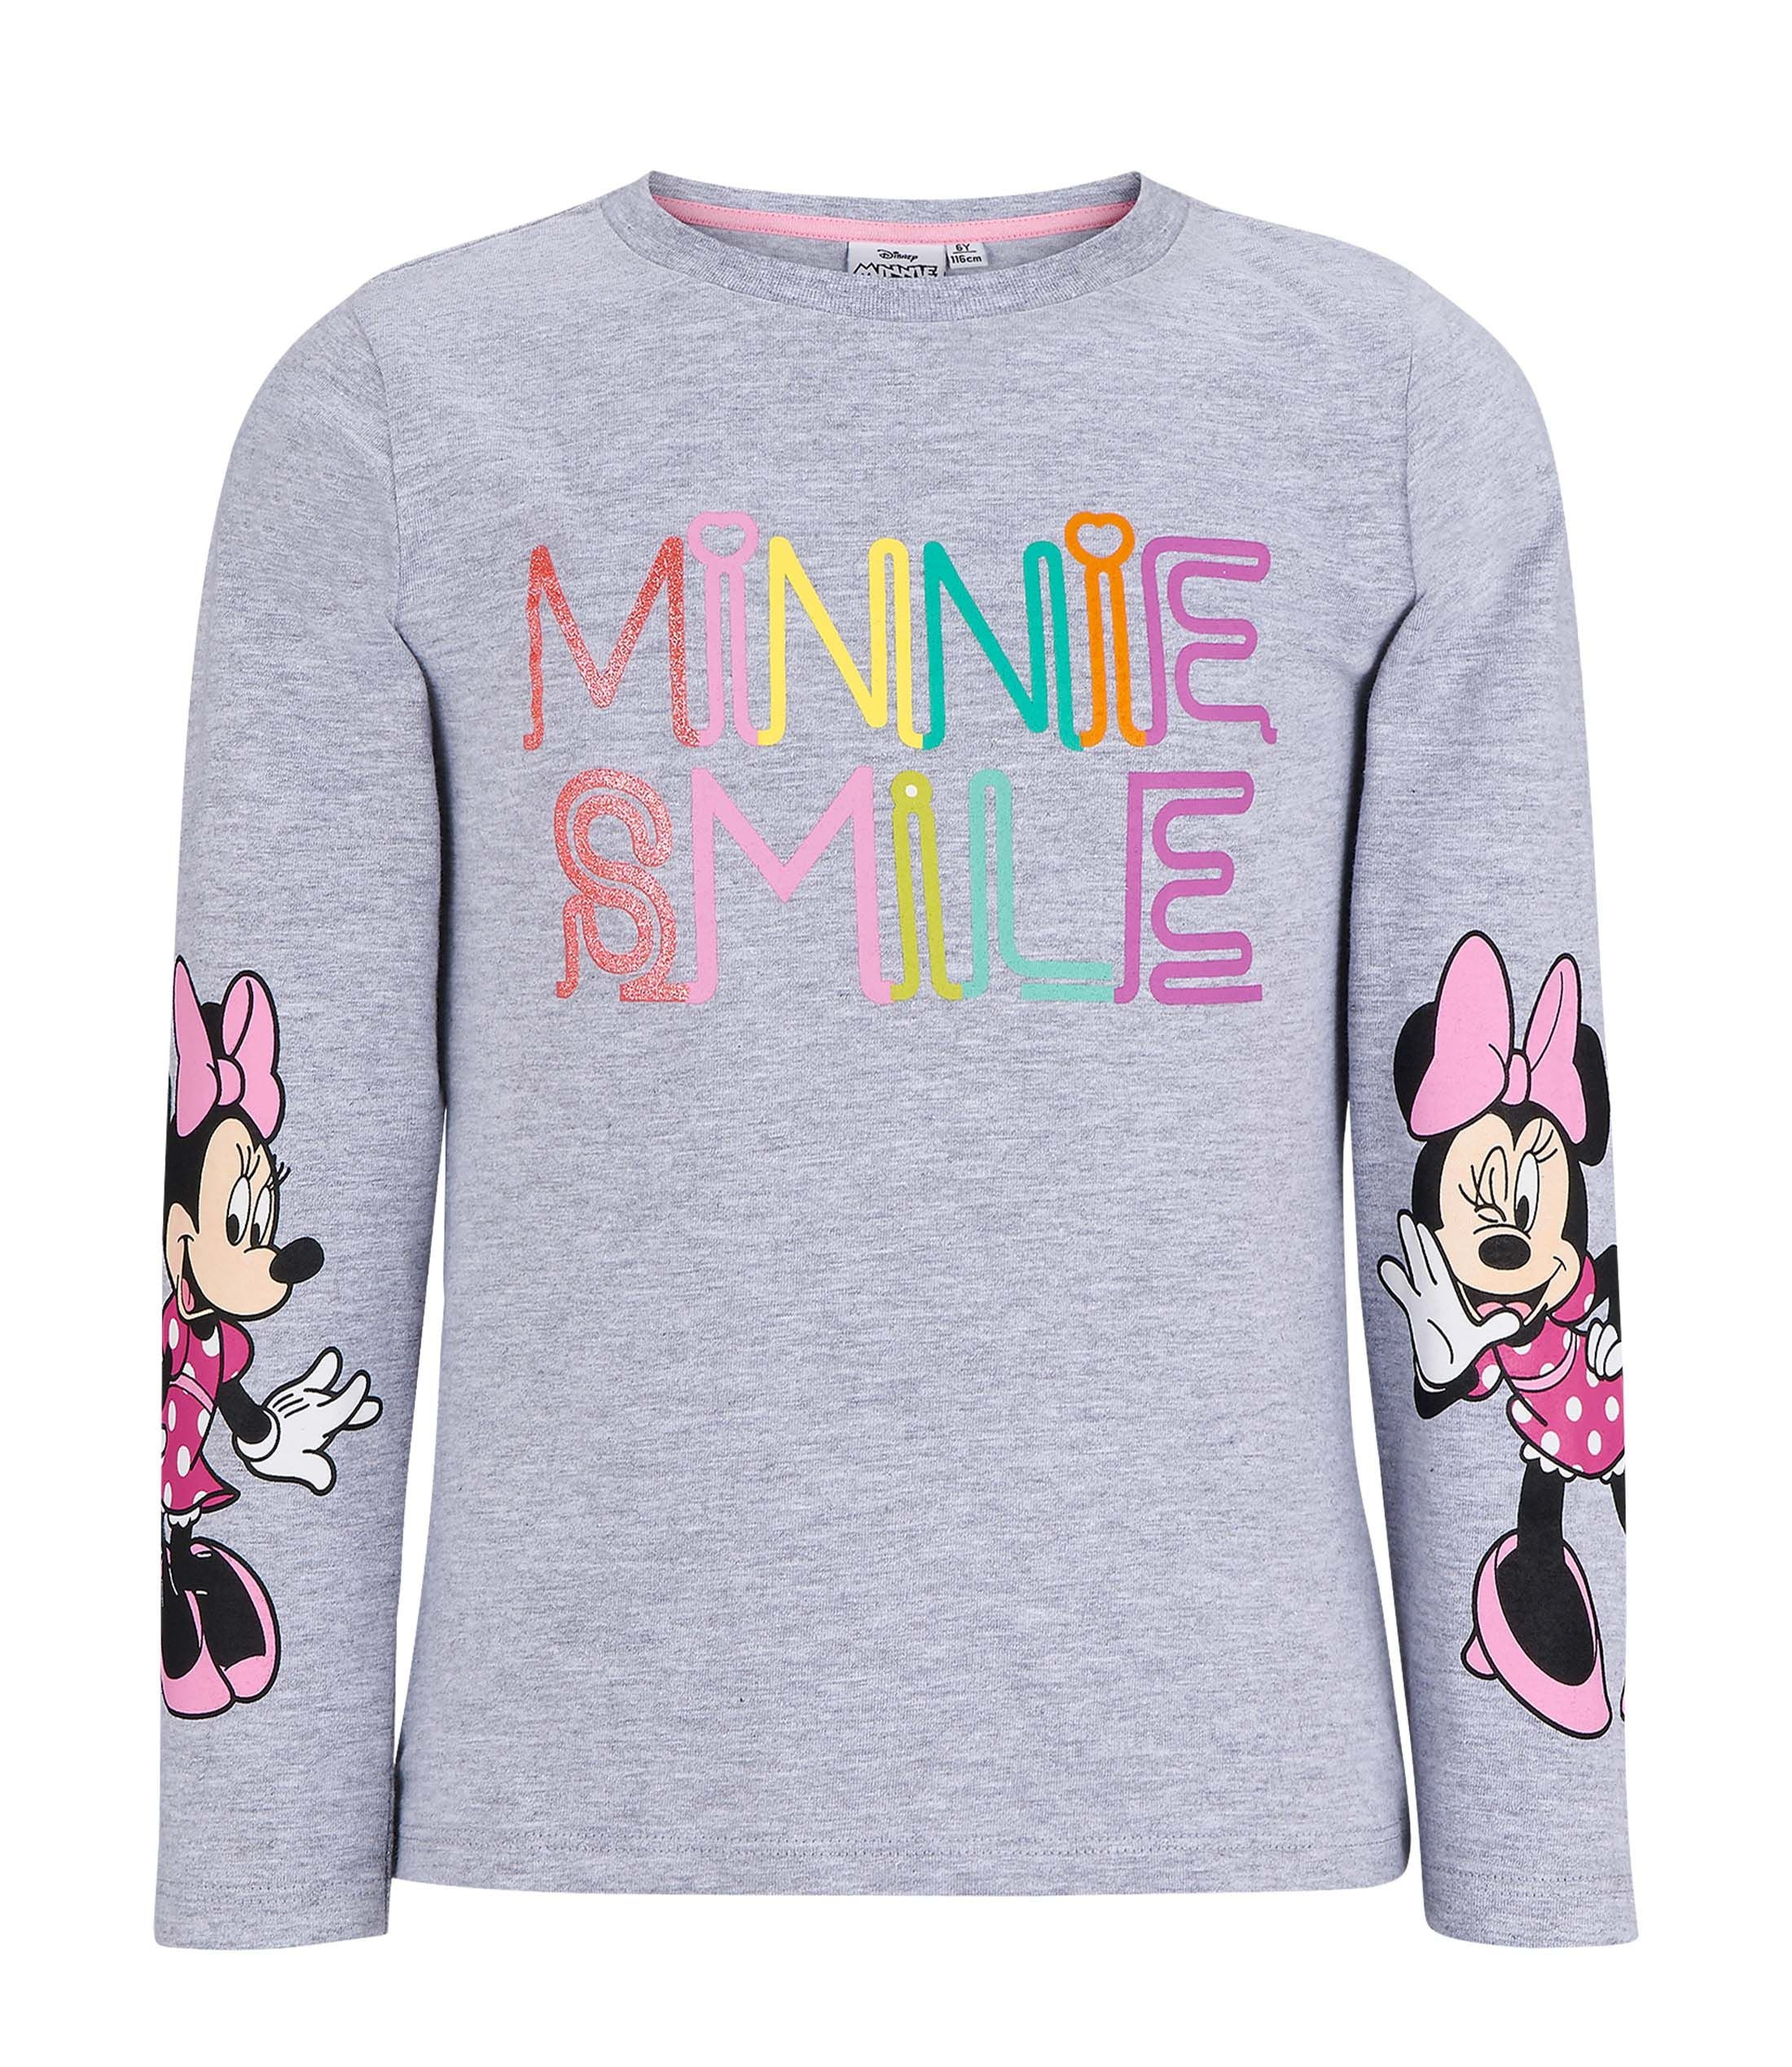 Disney Minnie Mouse Girls Long Sleeve Cotton Top T-Shirt Shirts Tees 2-8 Yrs